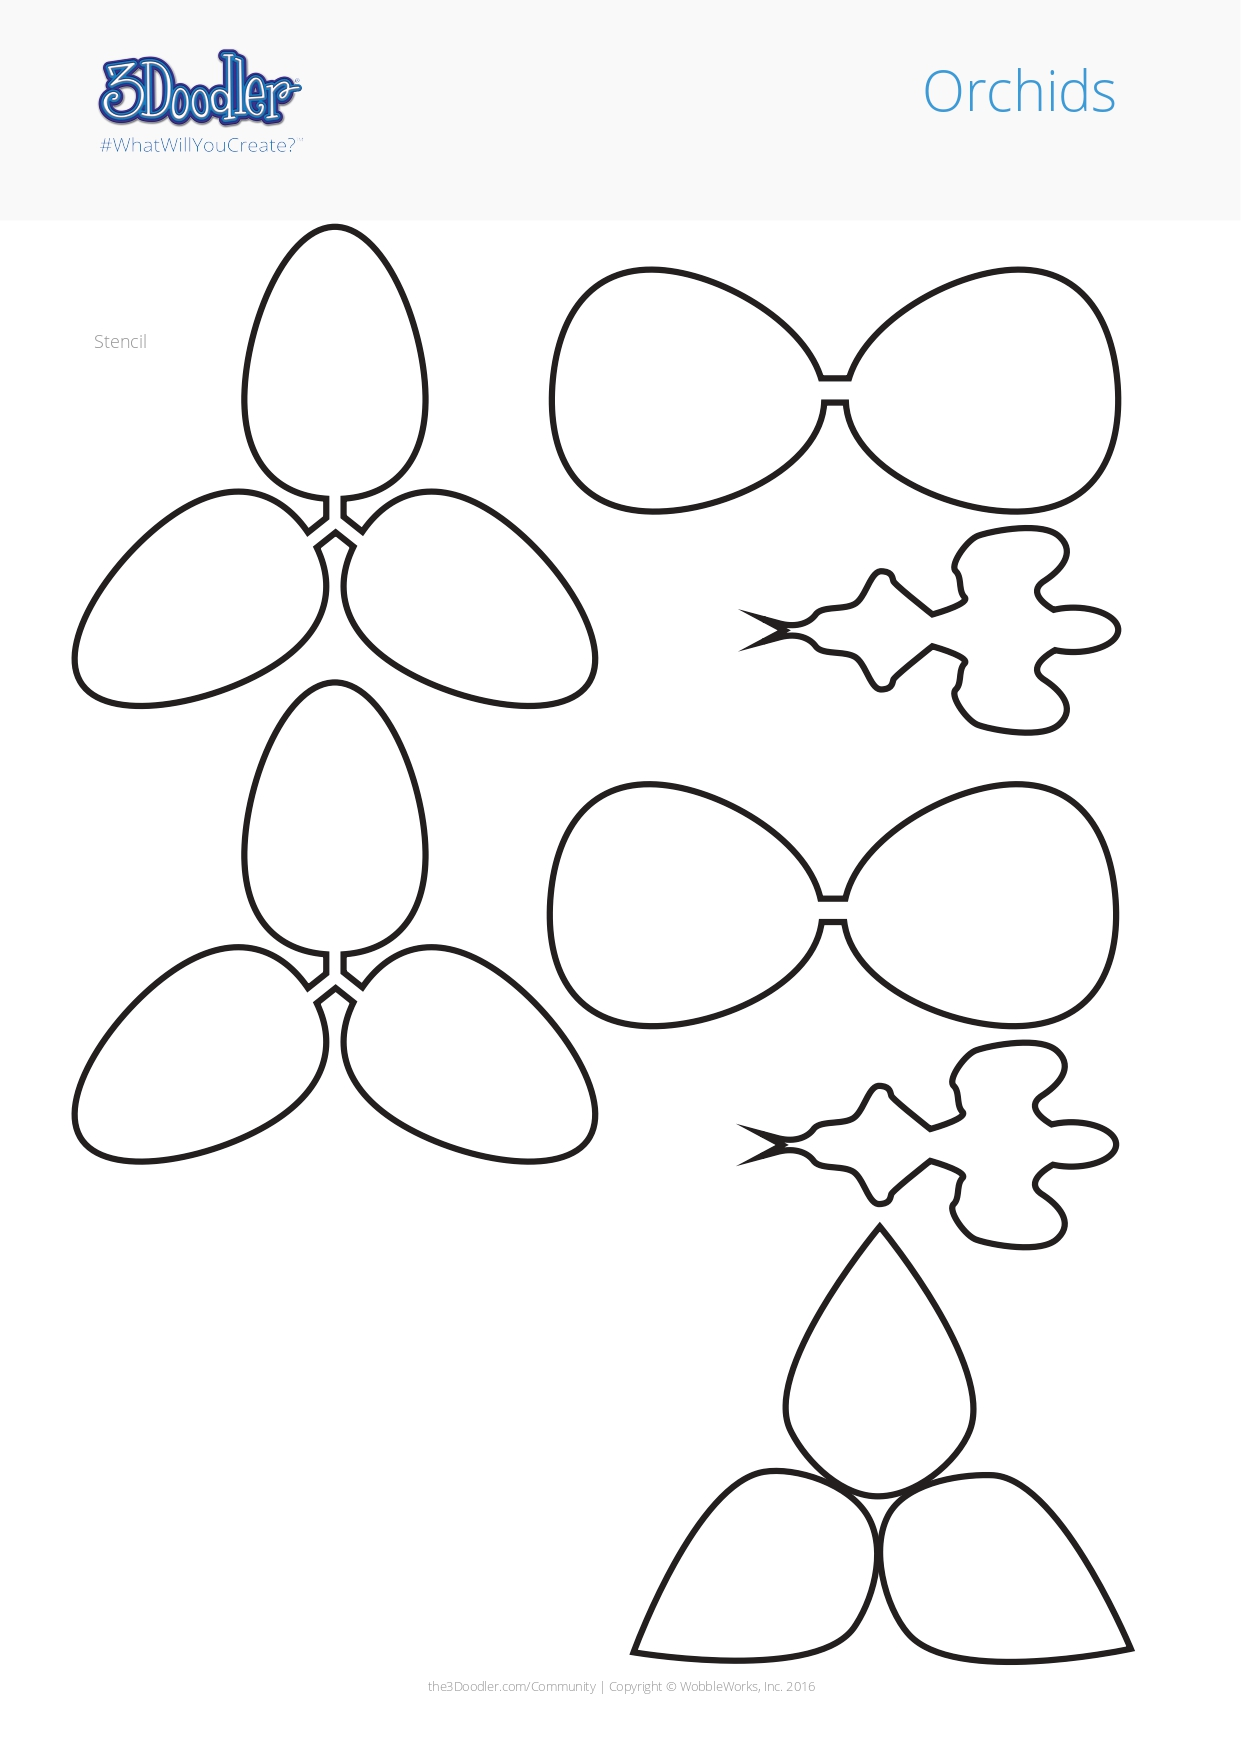 3D Pen Stencil Template Orchids